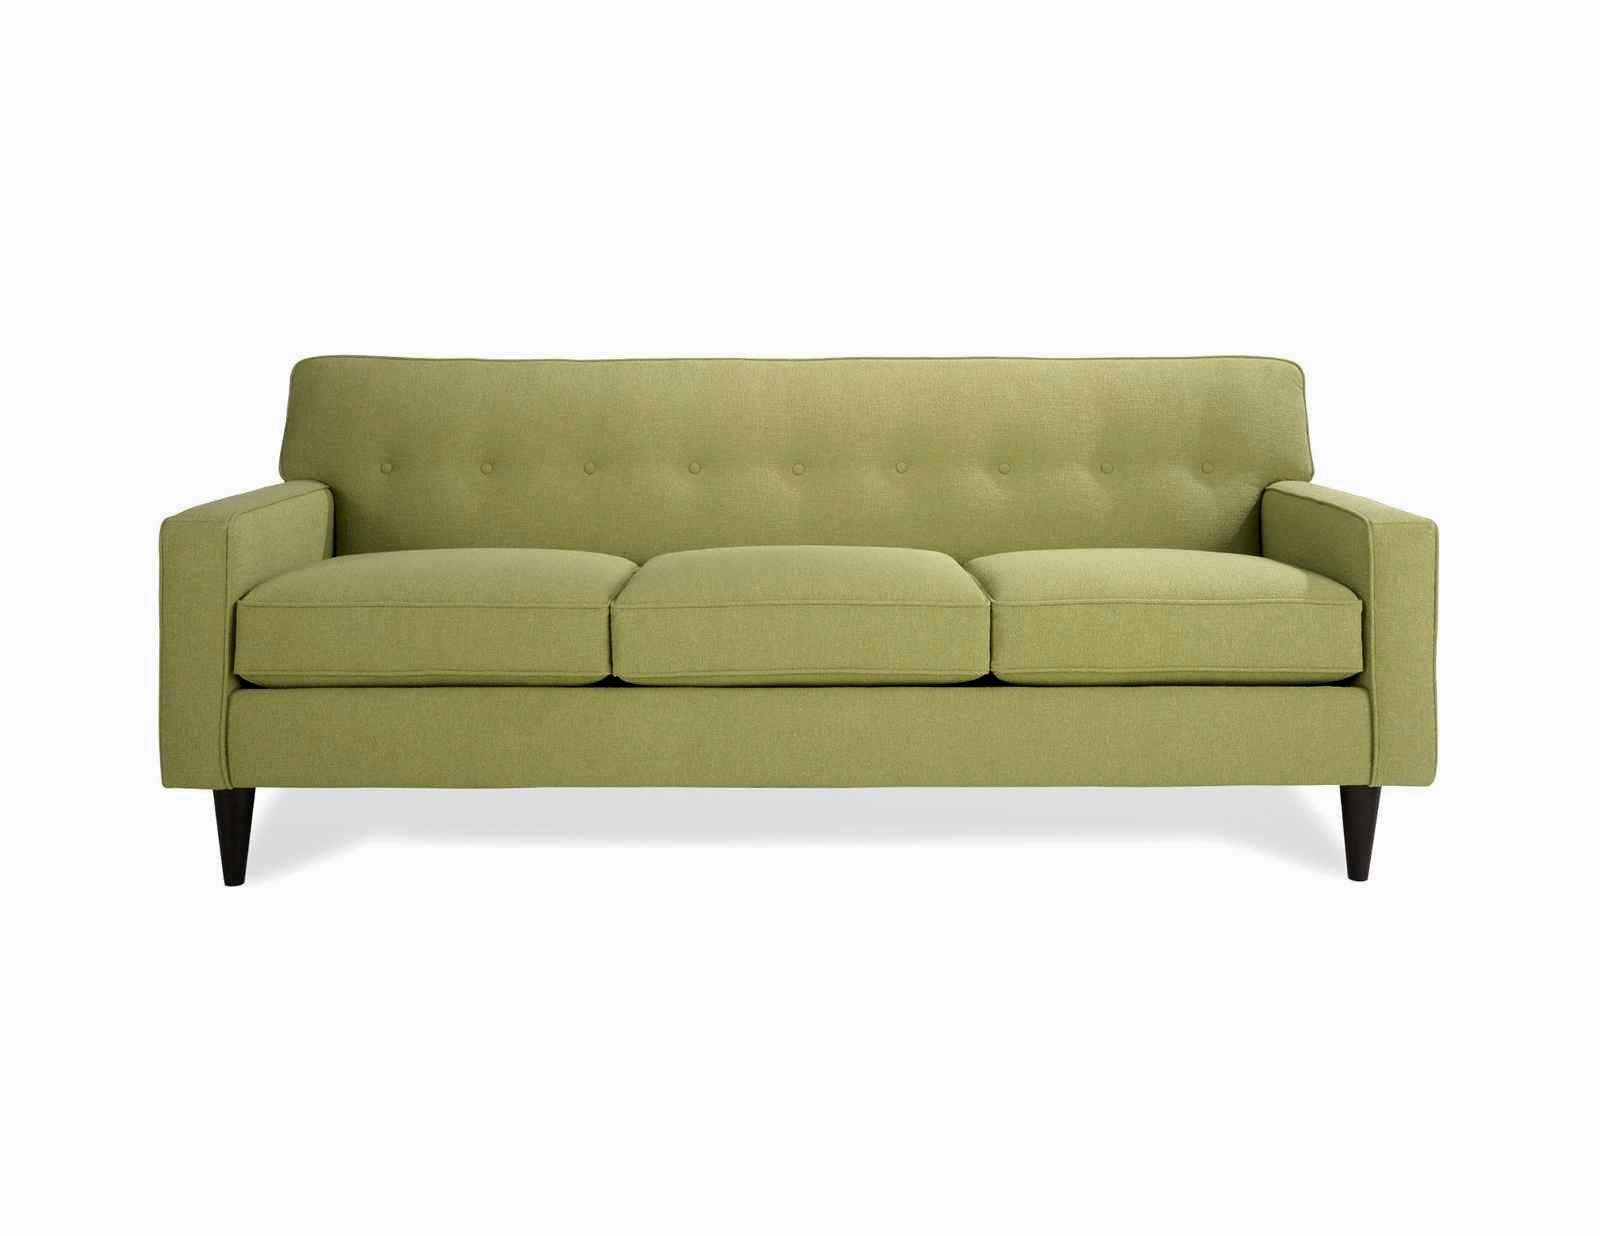 wonderful sectional reclining sofa pattern-Cool Sectional Reclining sofa Construction